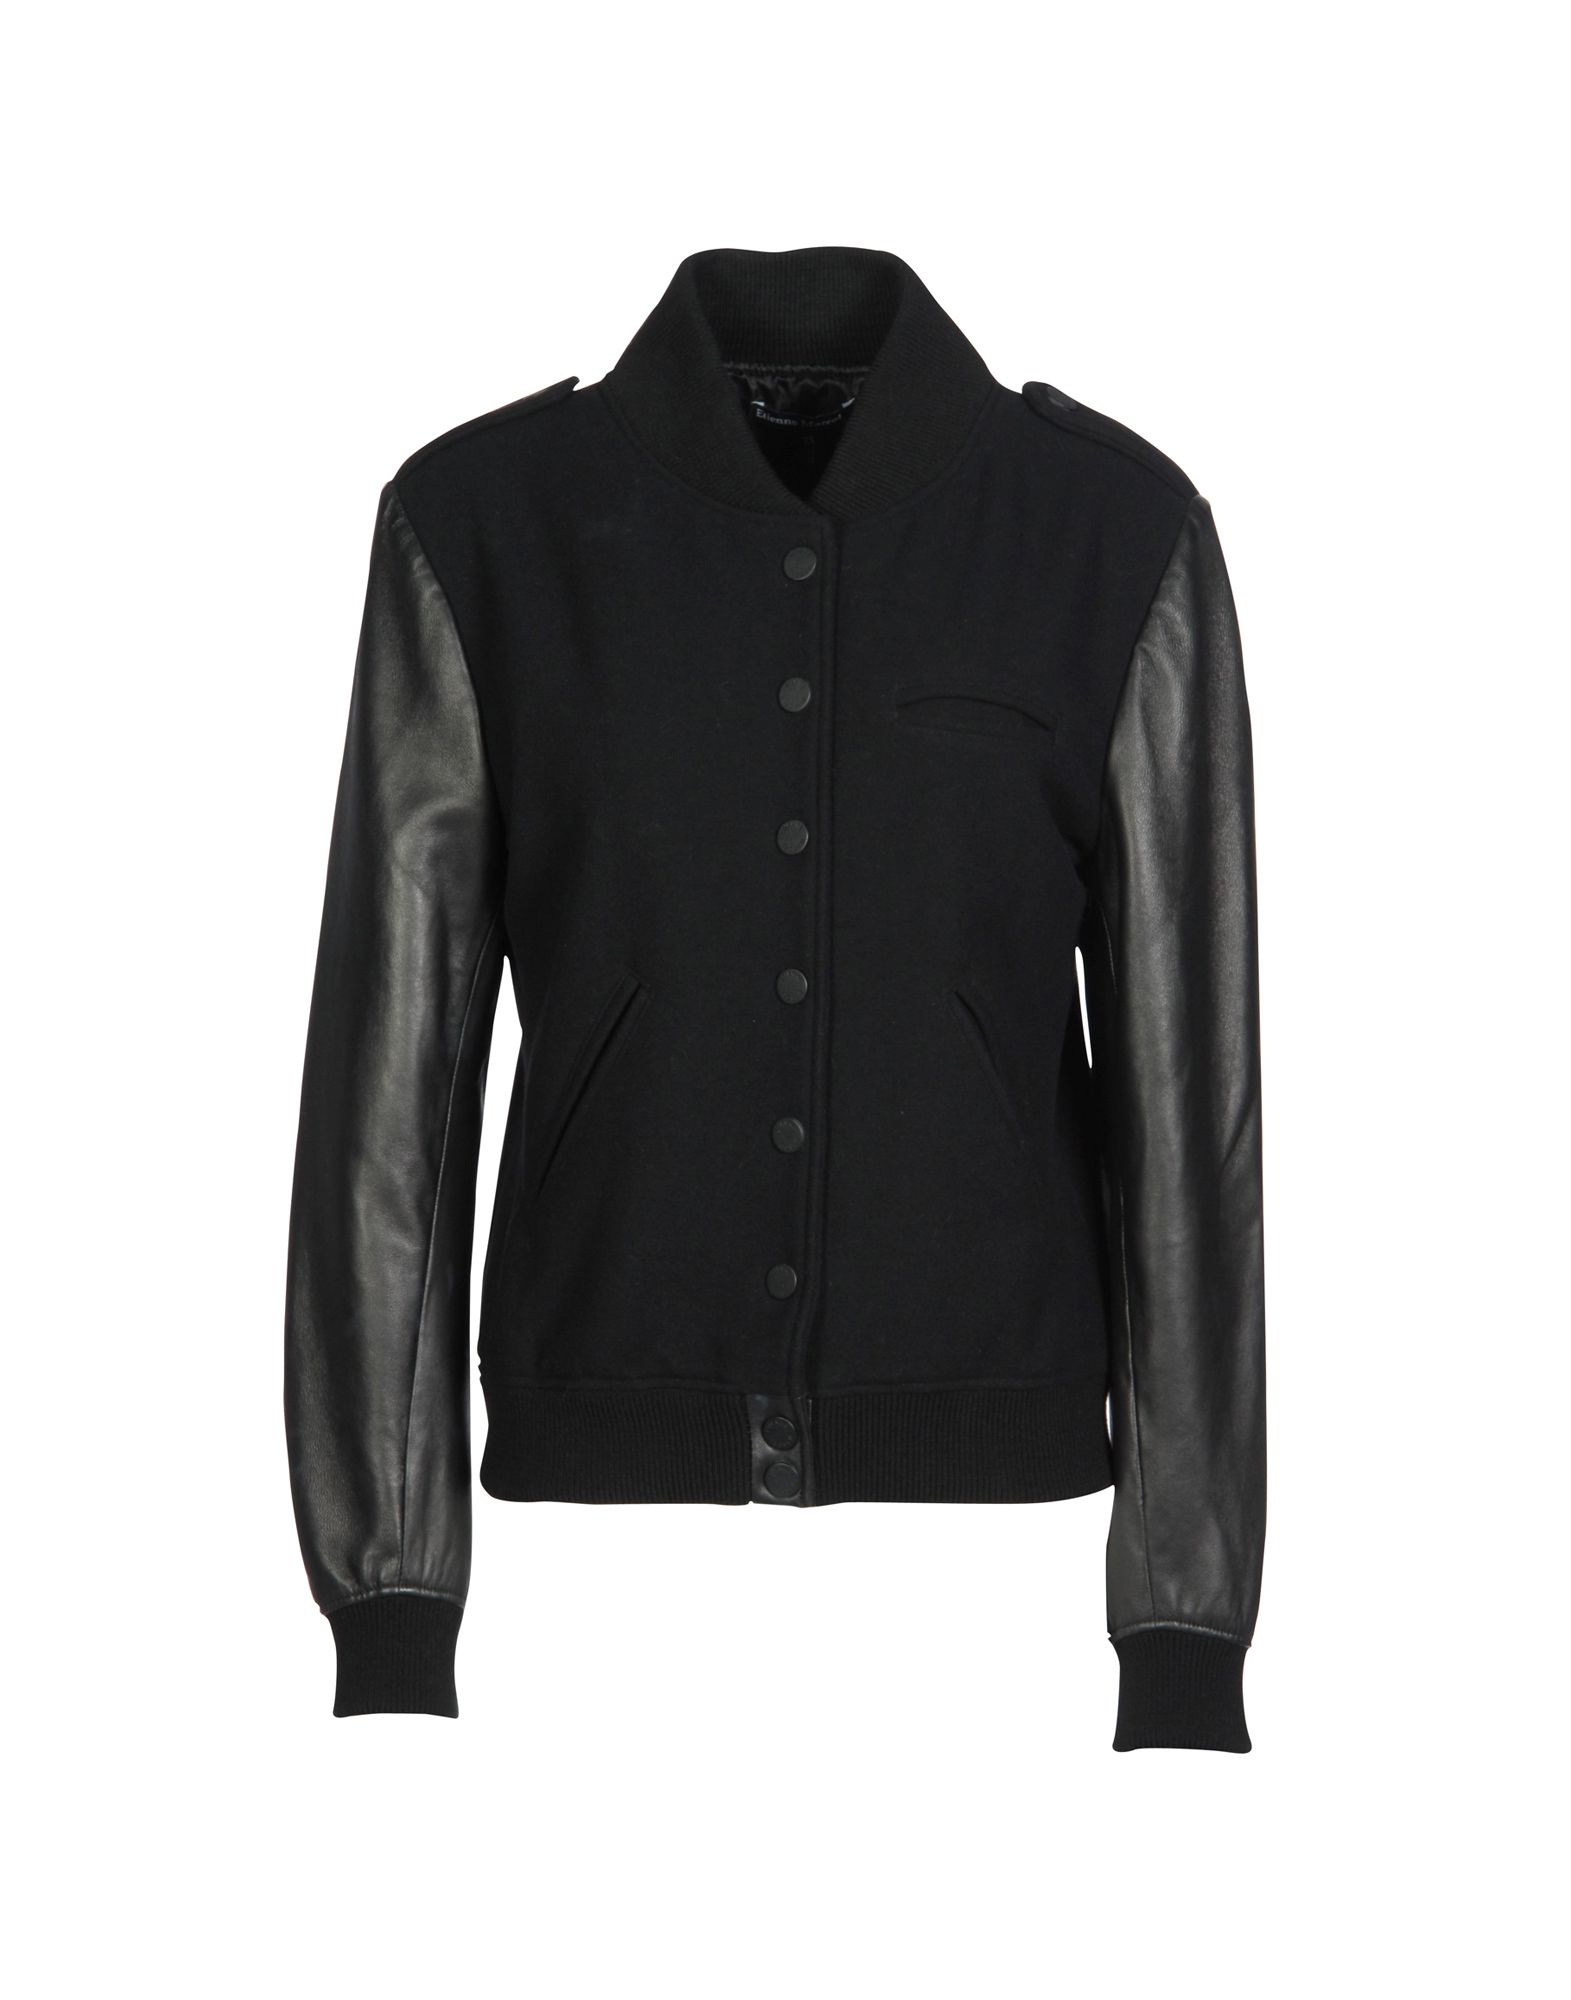 ETIENNE MARCEL Jackets in Black